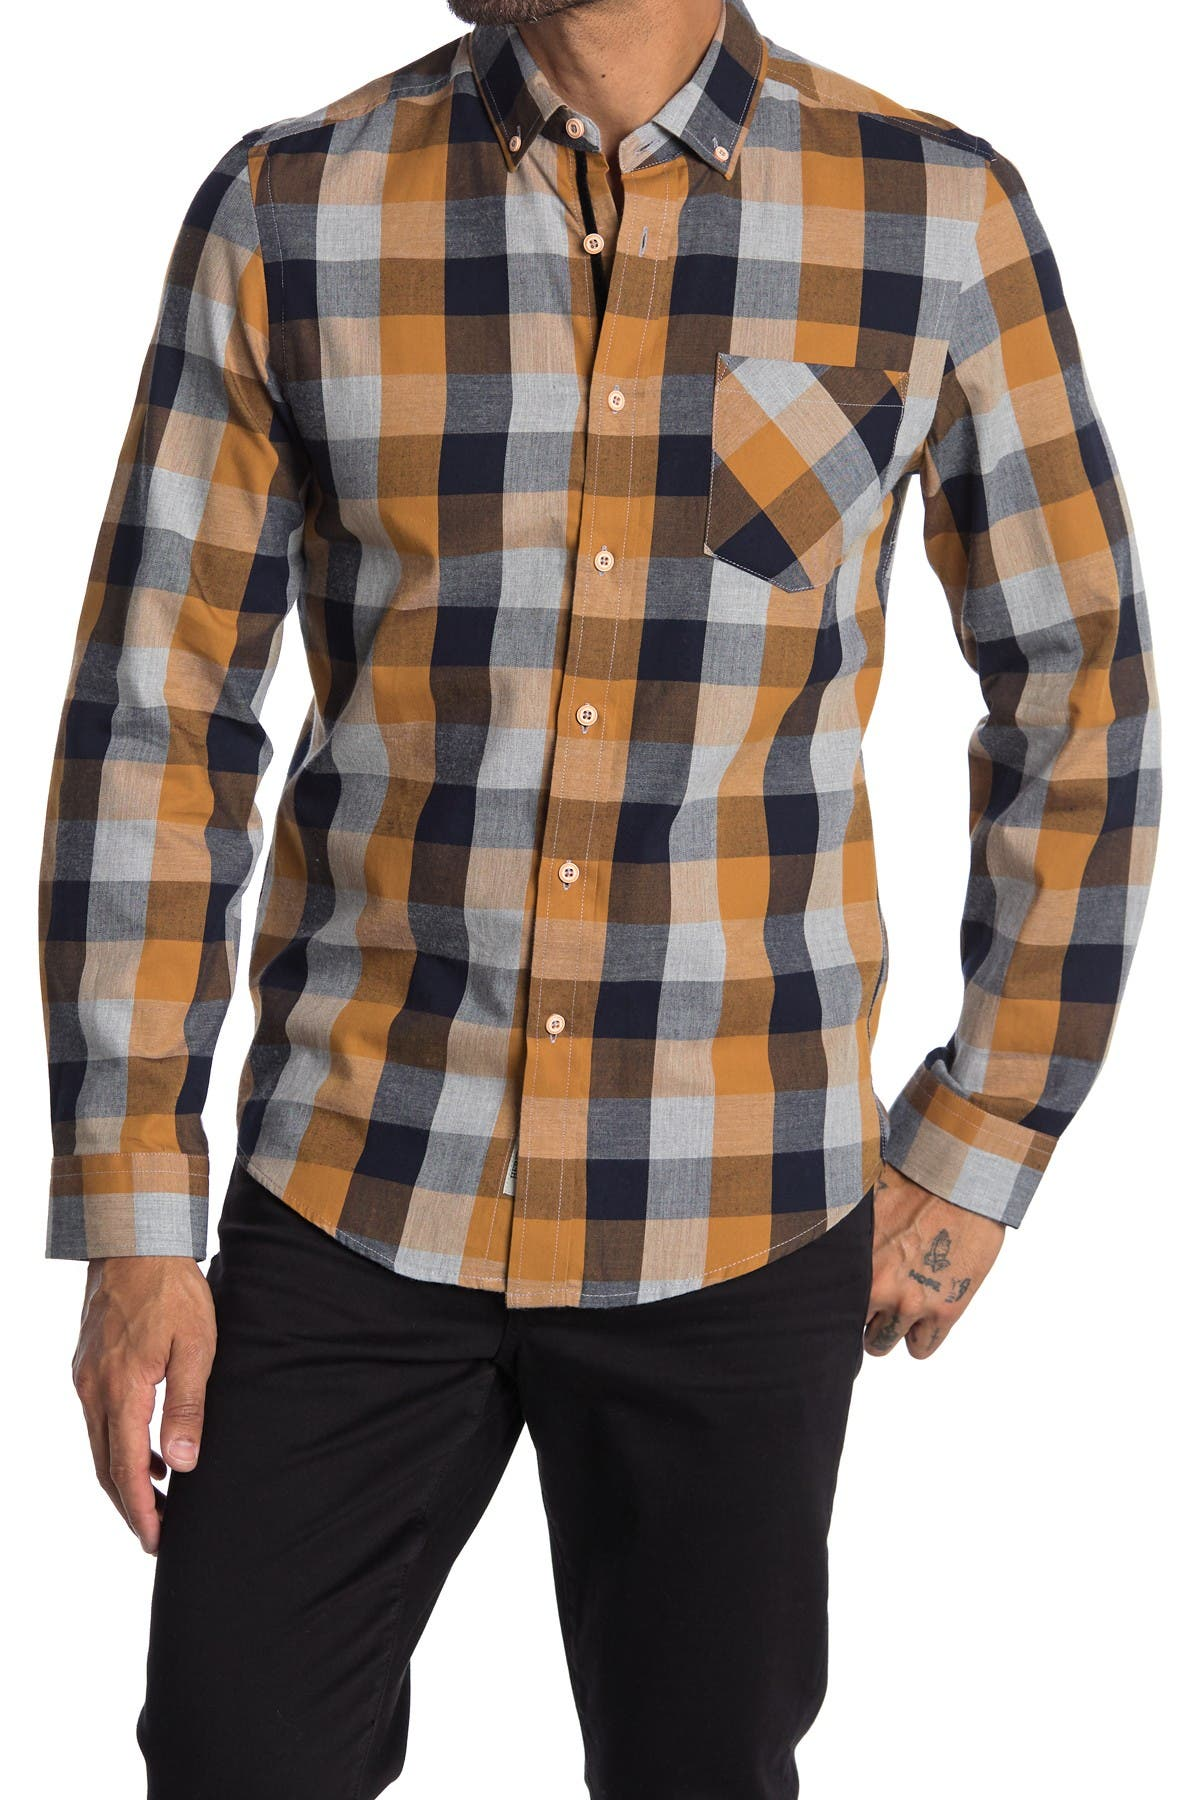 Image of Report Collection Plaid Regular Fit Flannel Shirt